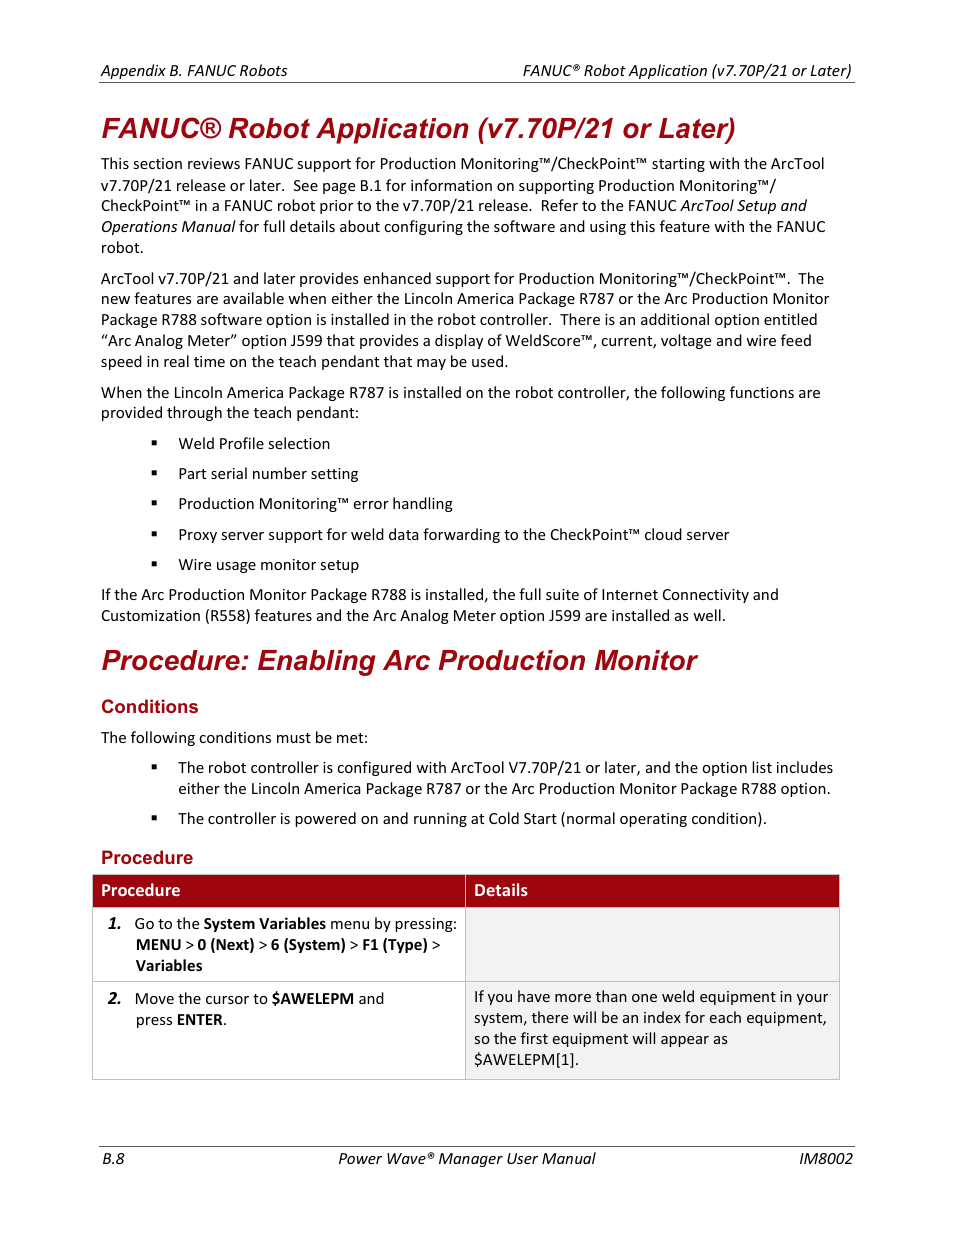 Procedure: enabling arc production monitor | Lincoln